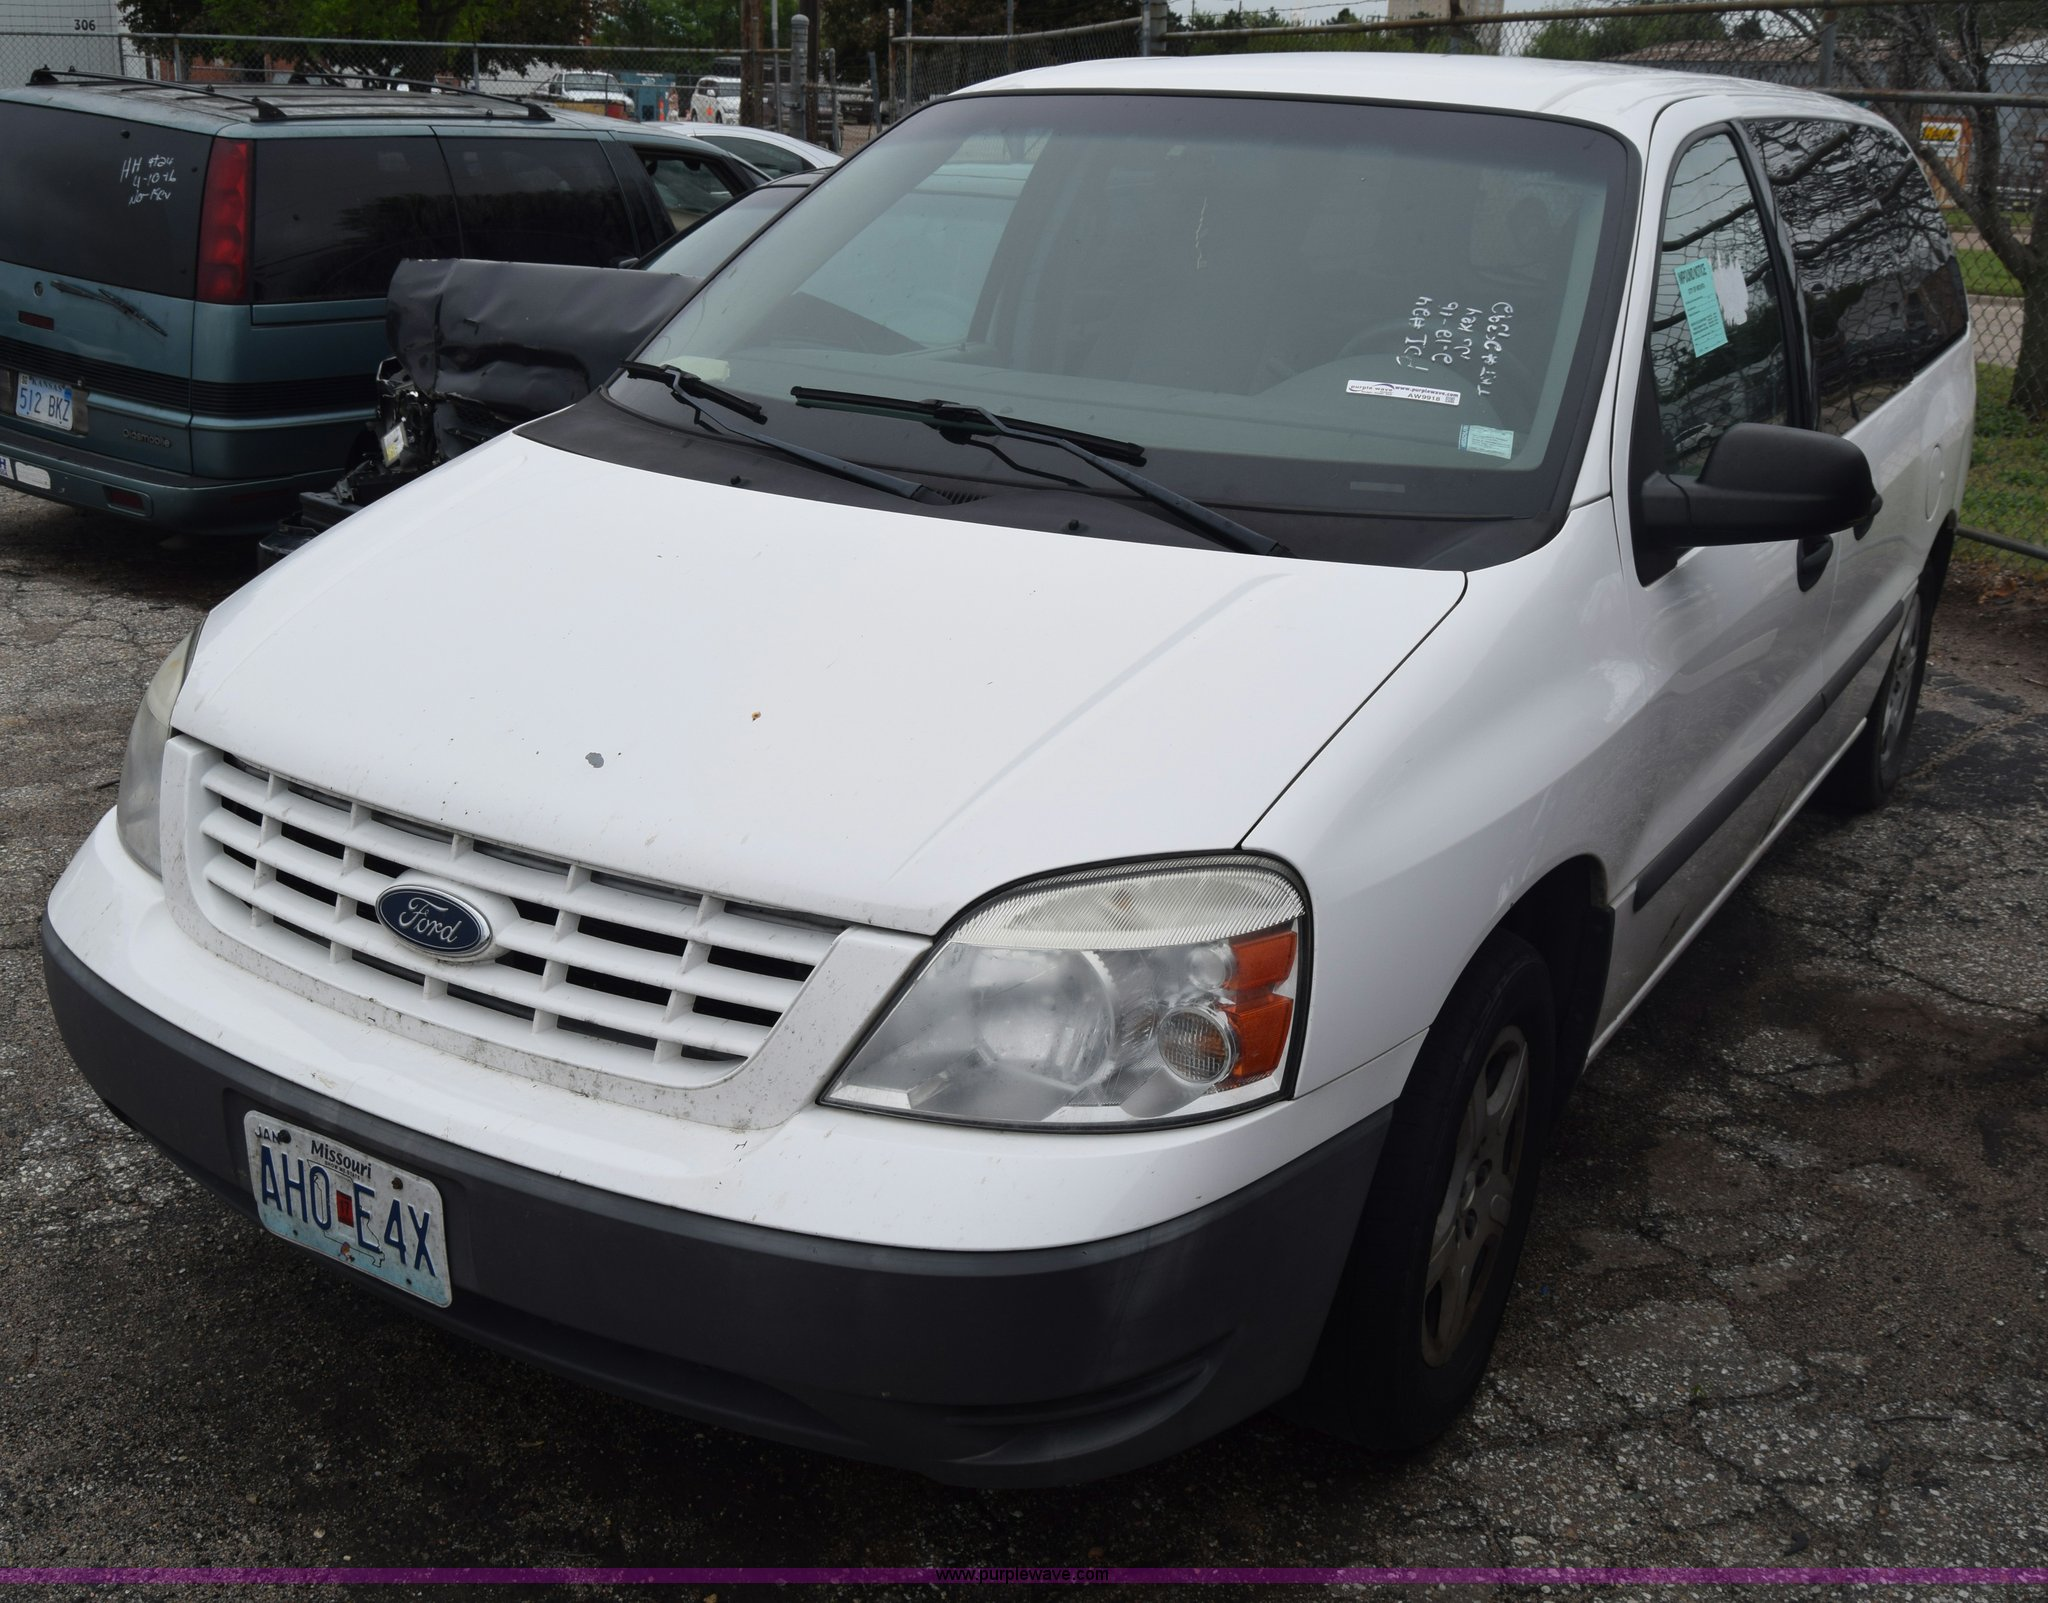 Aw9918 image for item aw9918 2005 ford freestar van